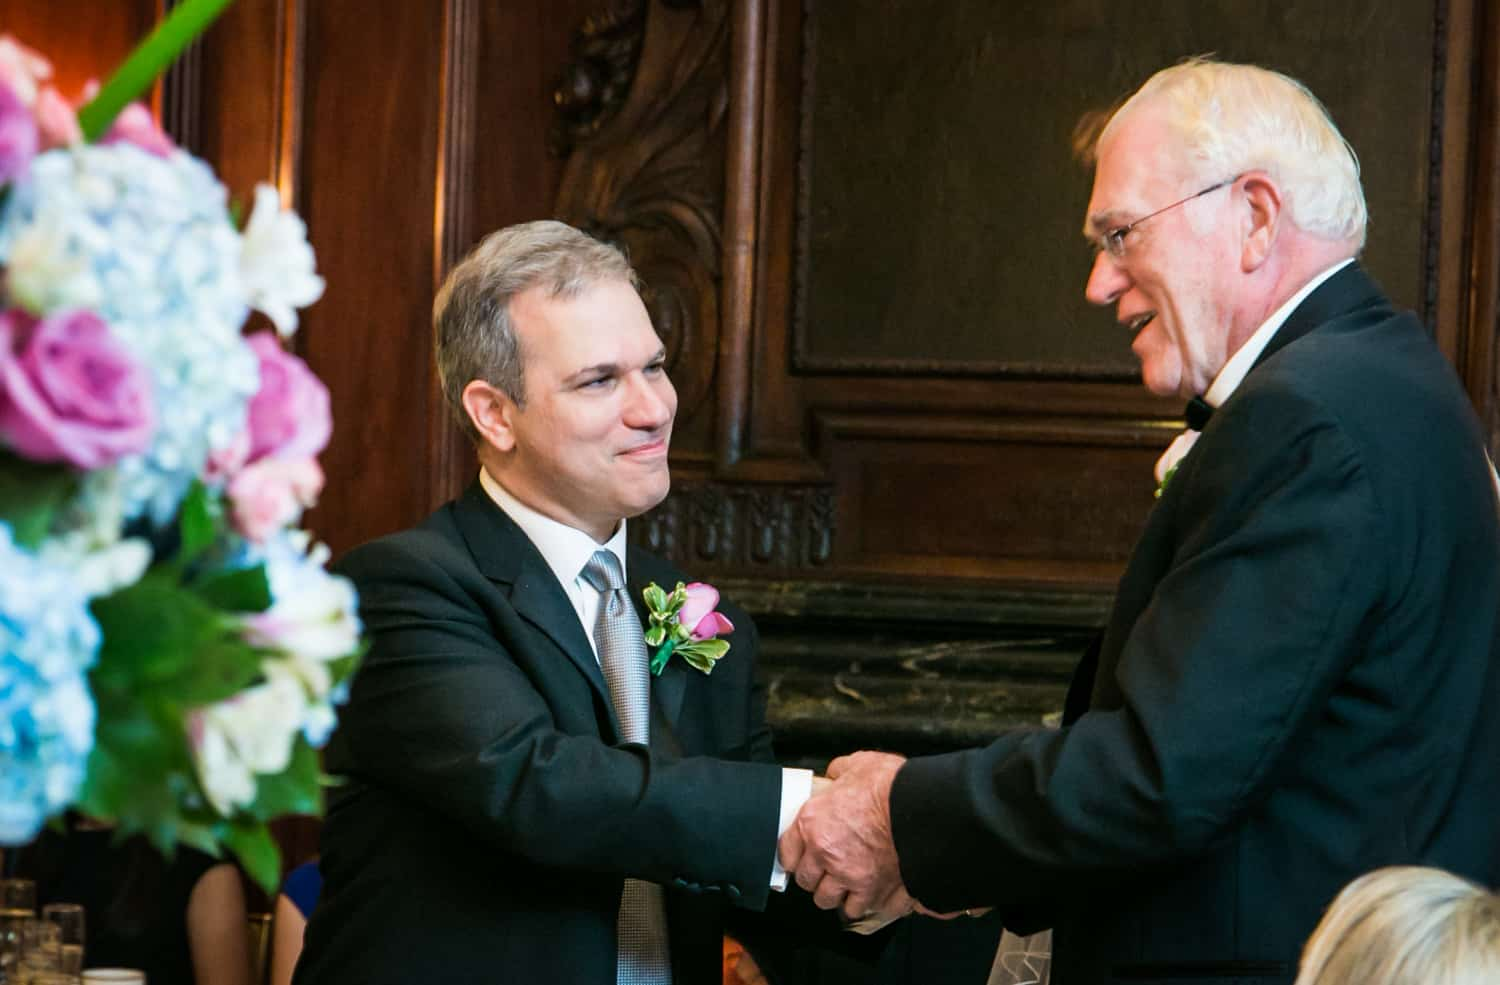 Groom shaking hands with older gentleman at Harvard Club wedding